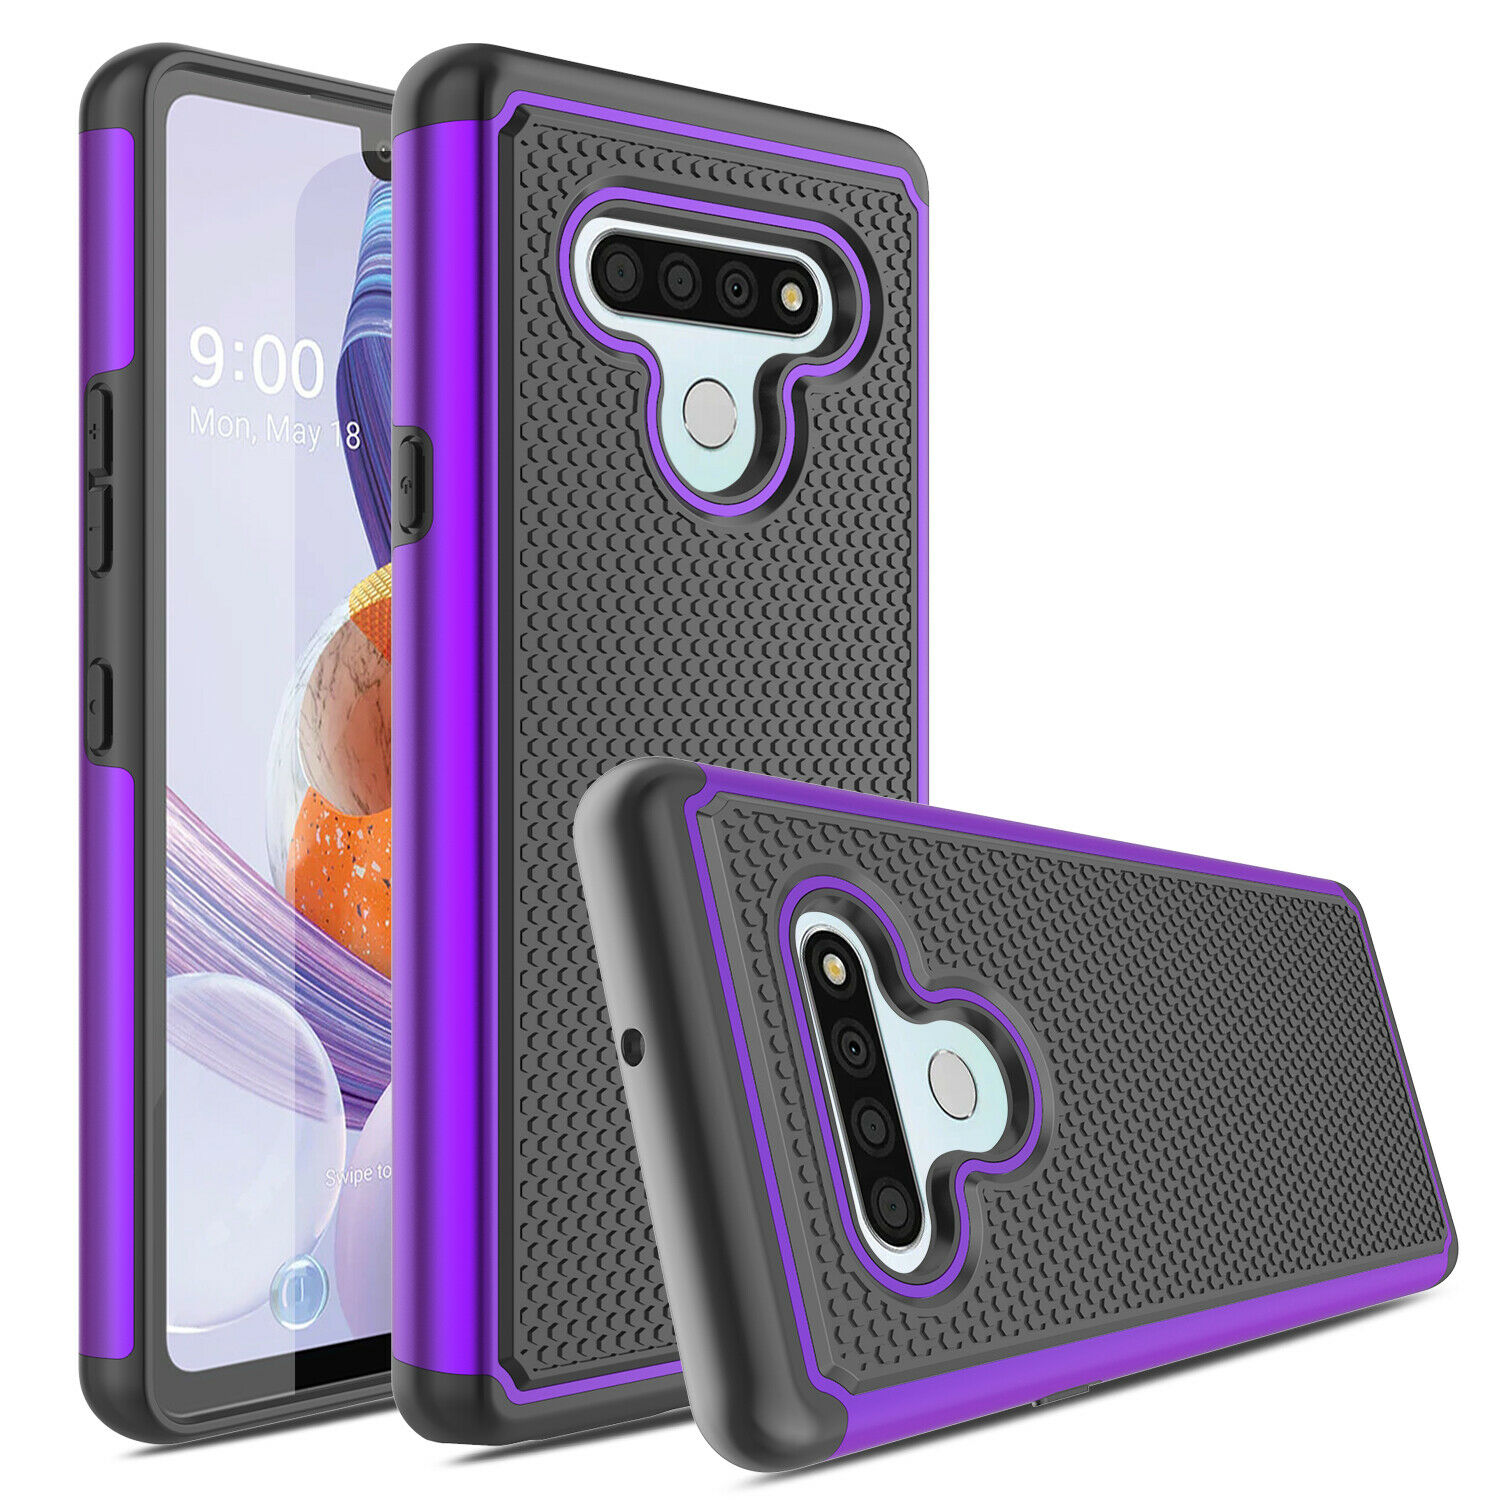 Phone Case For Stylo 6 Stylo 5 Stylo 4 LG K40 K30 2019 LG Aristo 4 Plus G8 Rugged Dual Layer Protective Case For LG Stylo 6/5/4